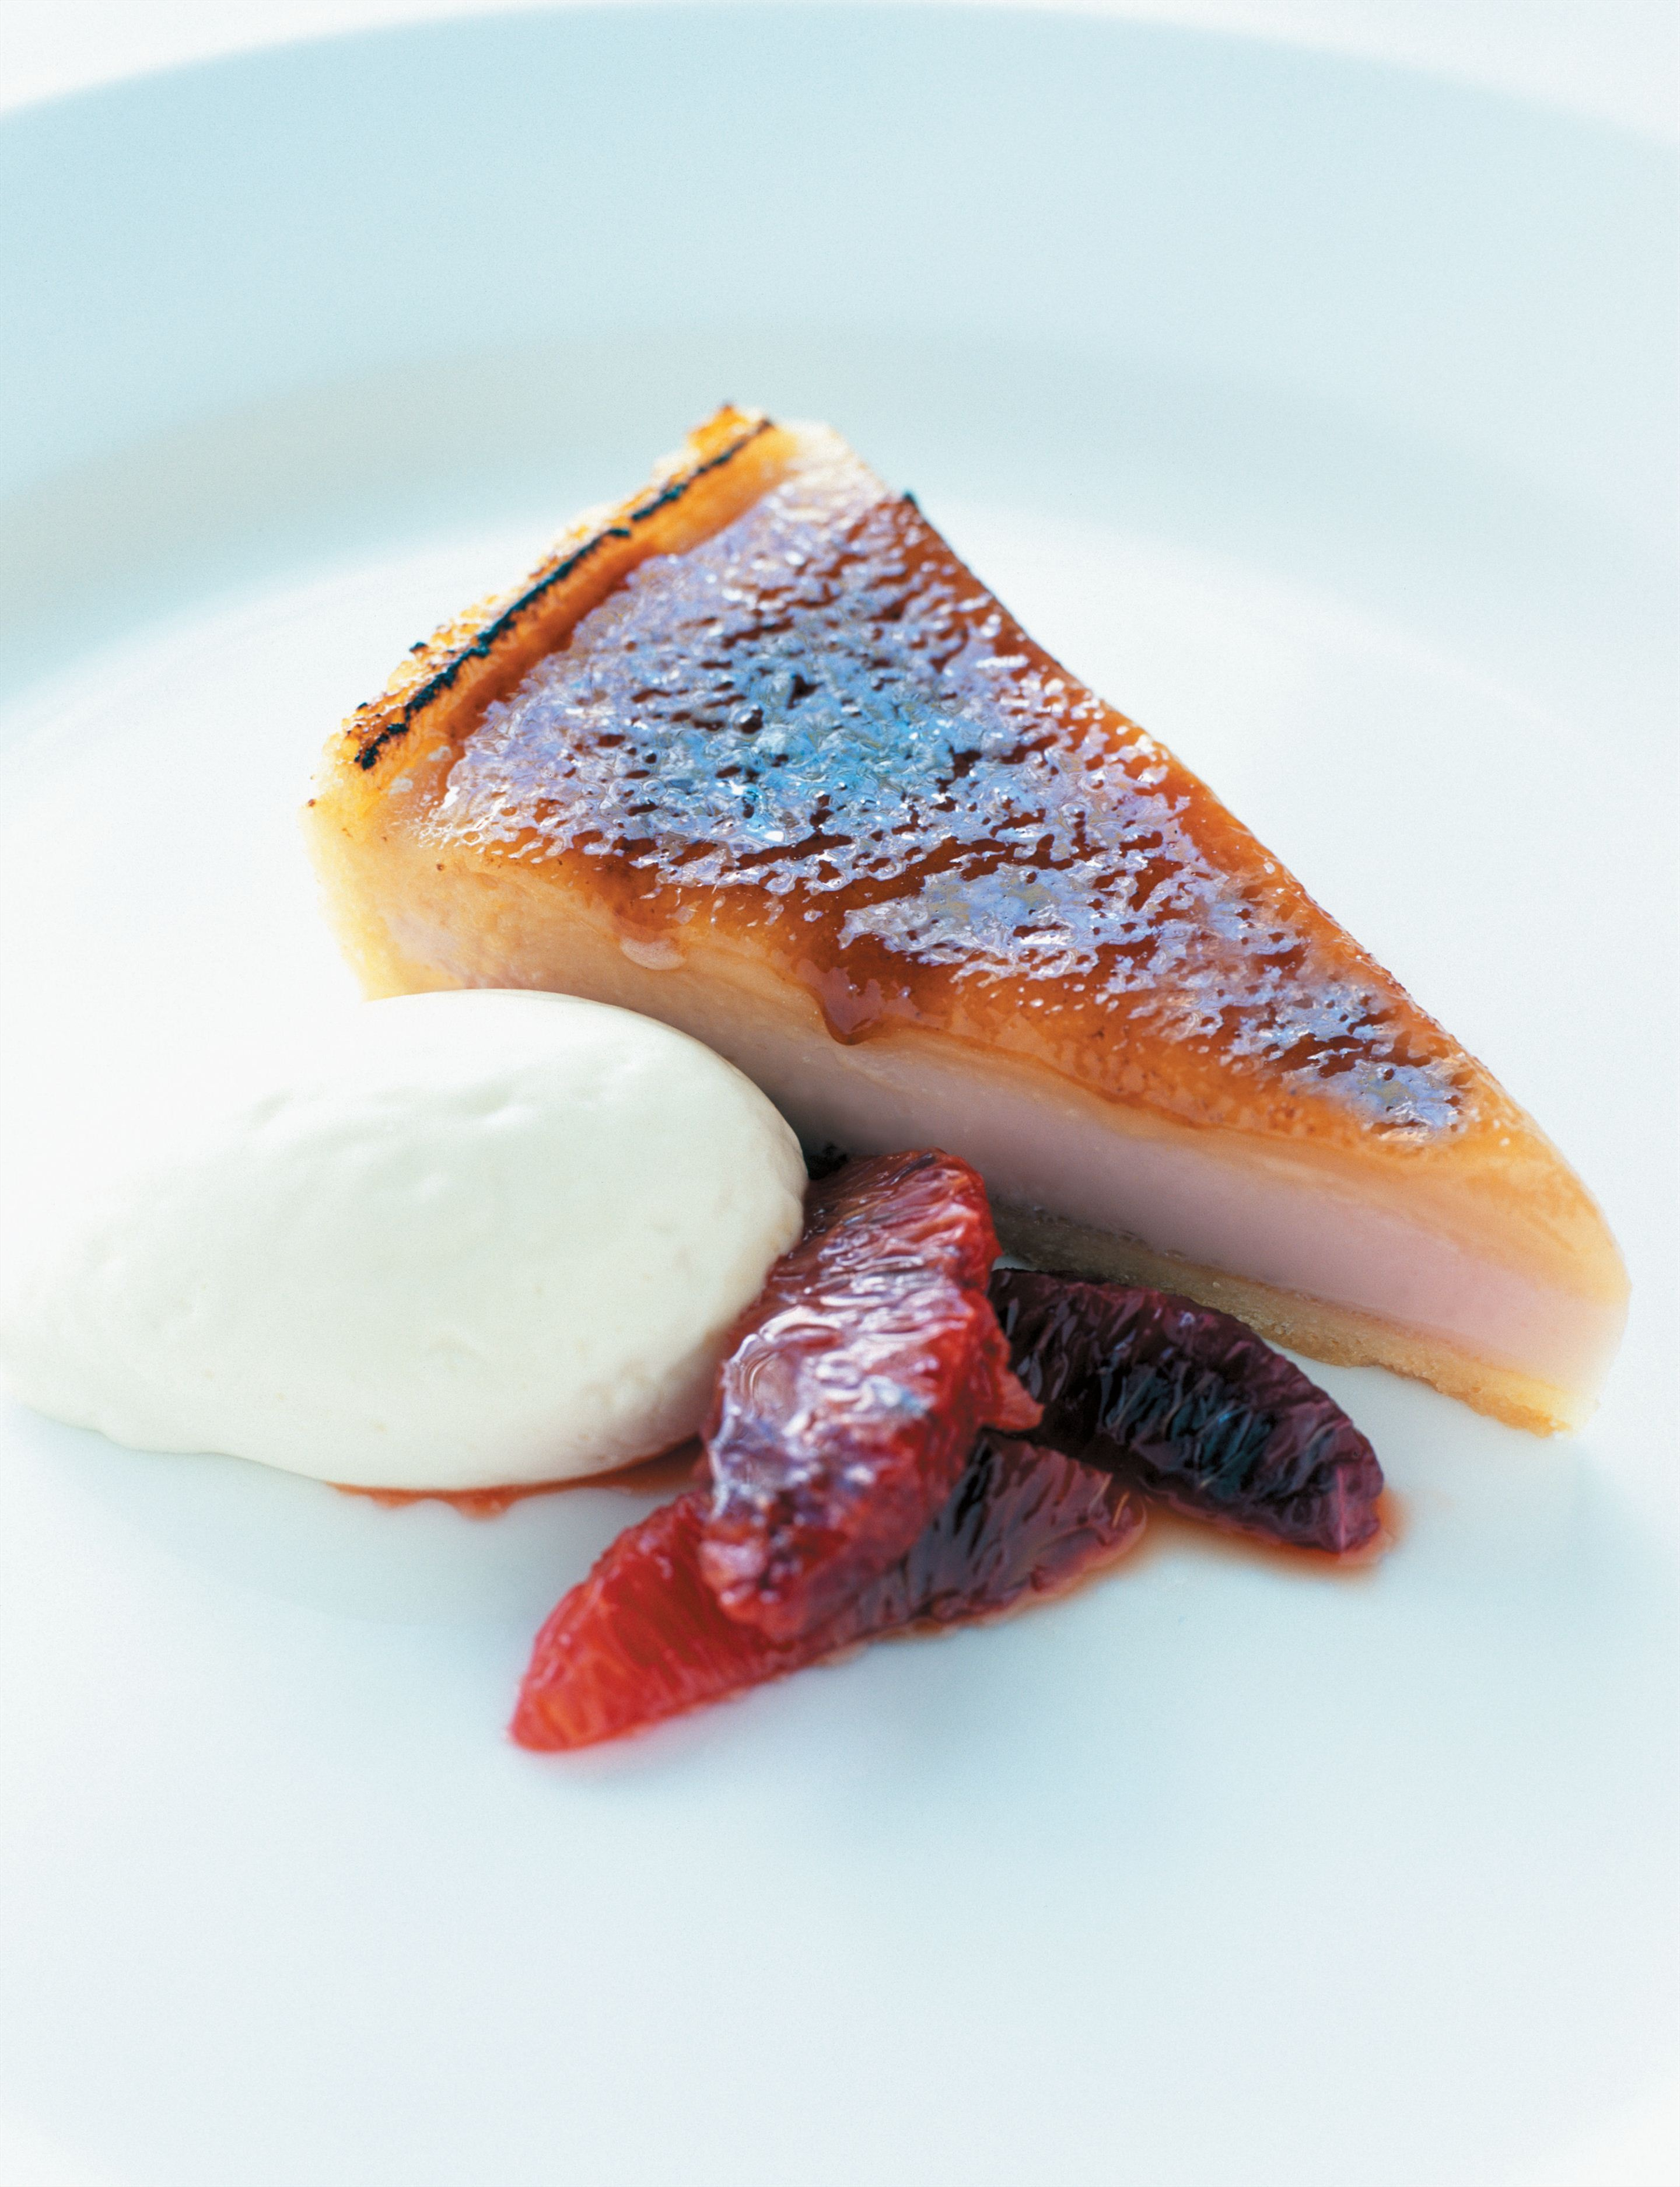 Caramelised blood orange tart with crème fraîche